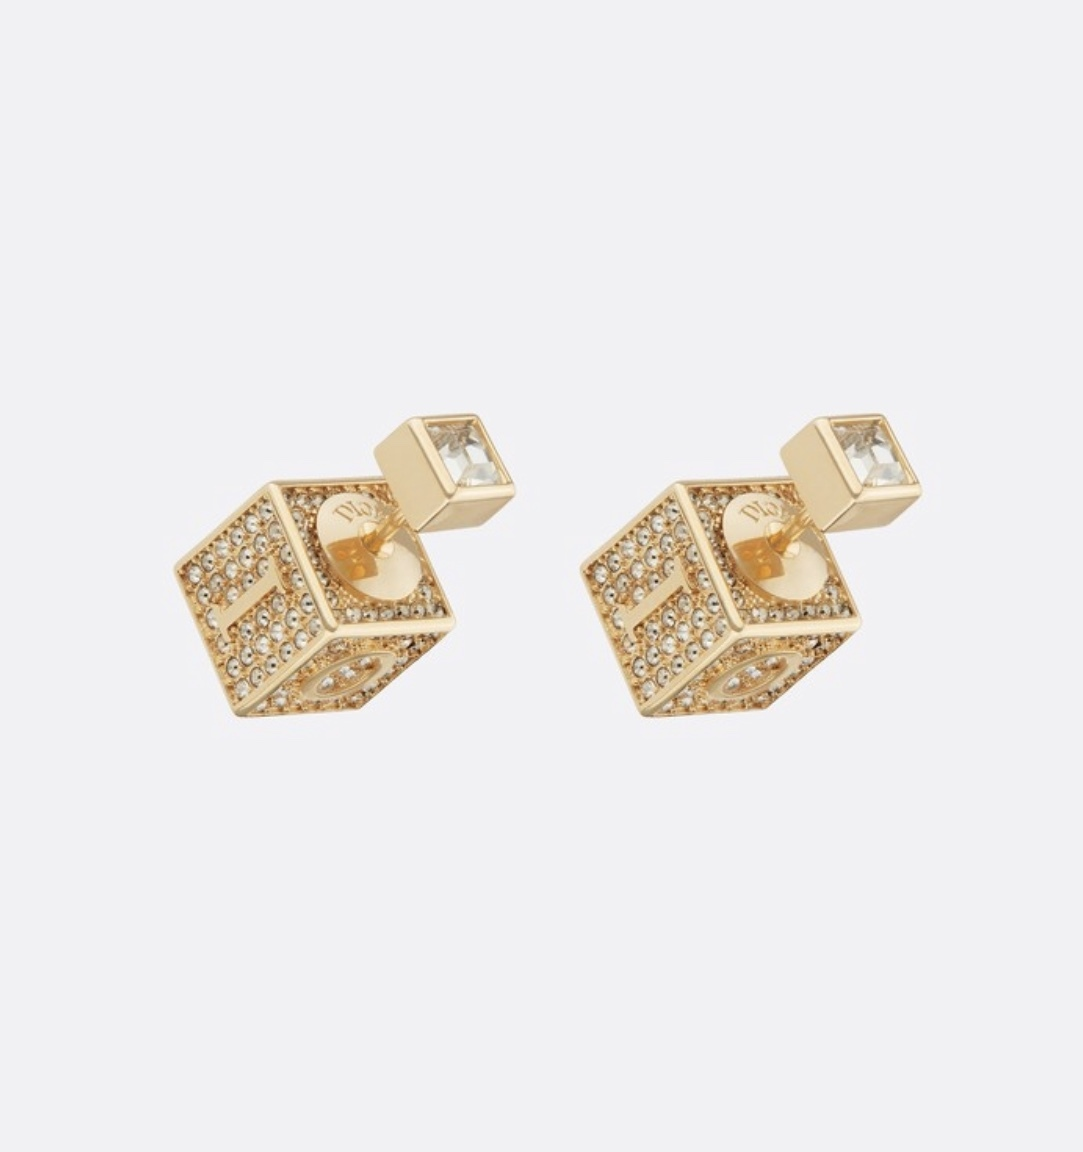 Primary image for AUTH Christian Dior 2019 LUCKY SQUARE TRIBLES EARRINGS CRYSTAL GOLD